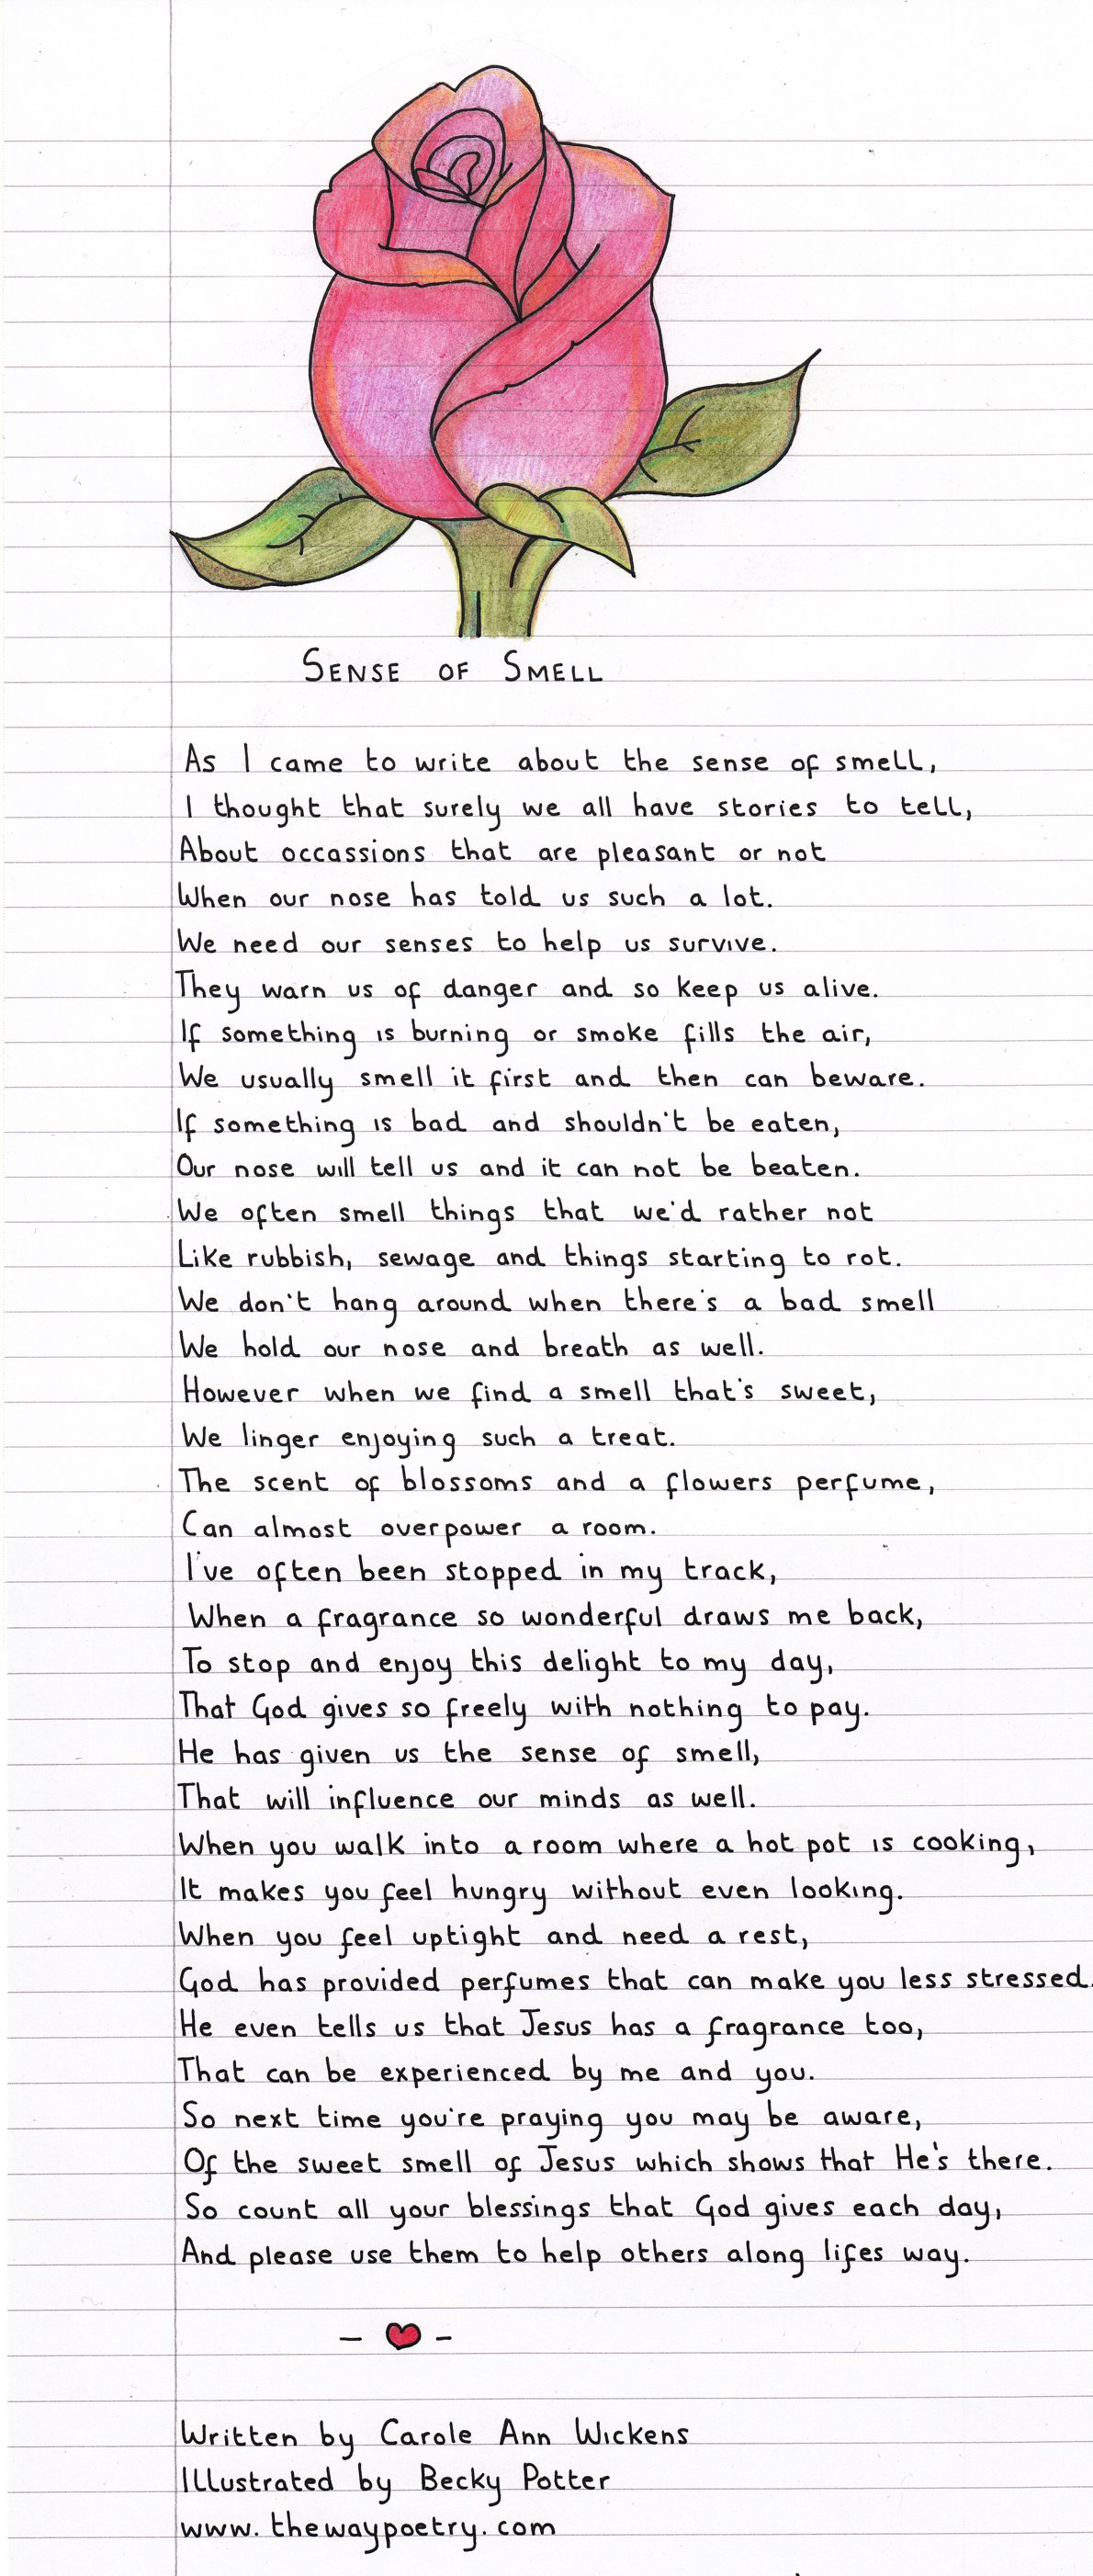 Sense of Smell by Carole Ann Wickens